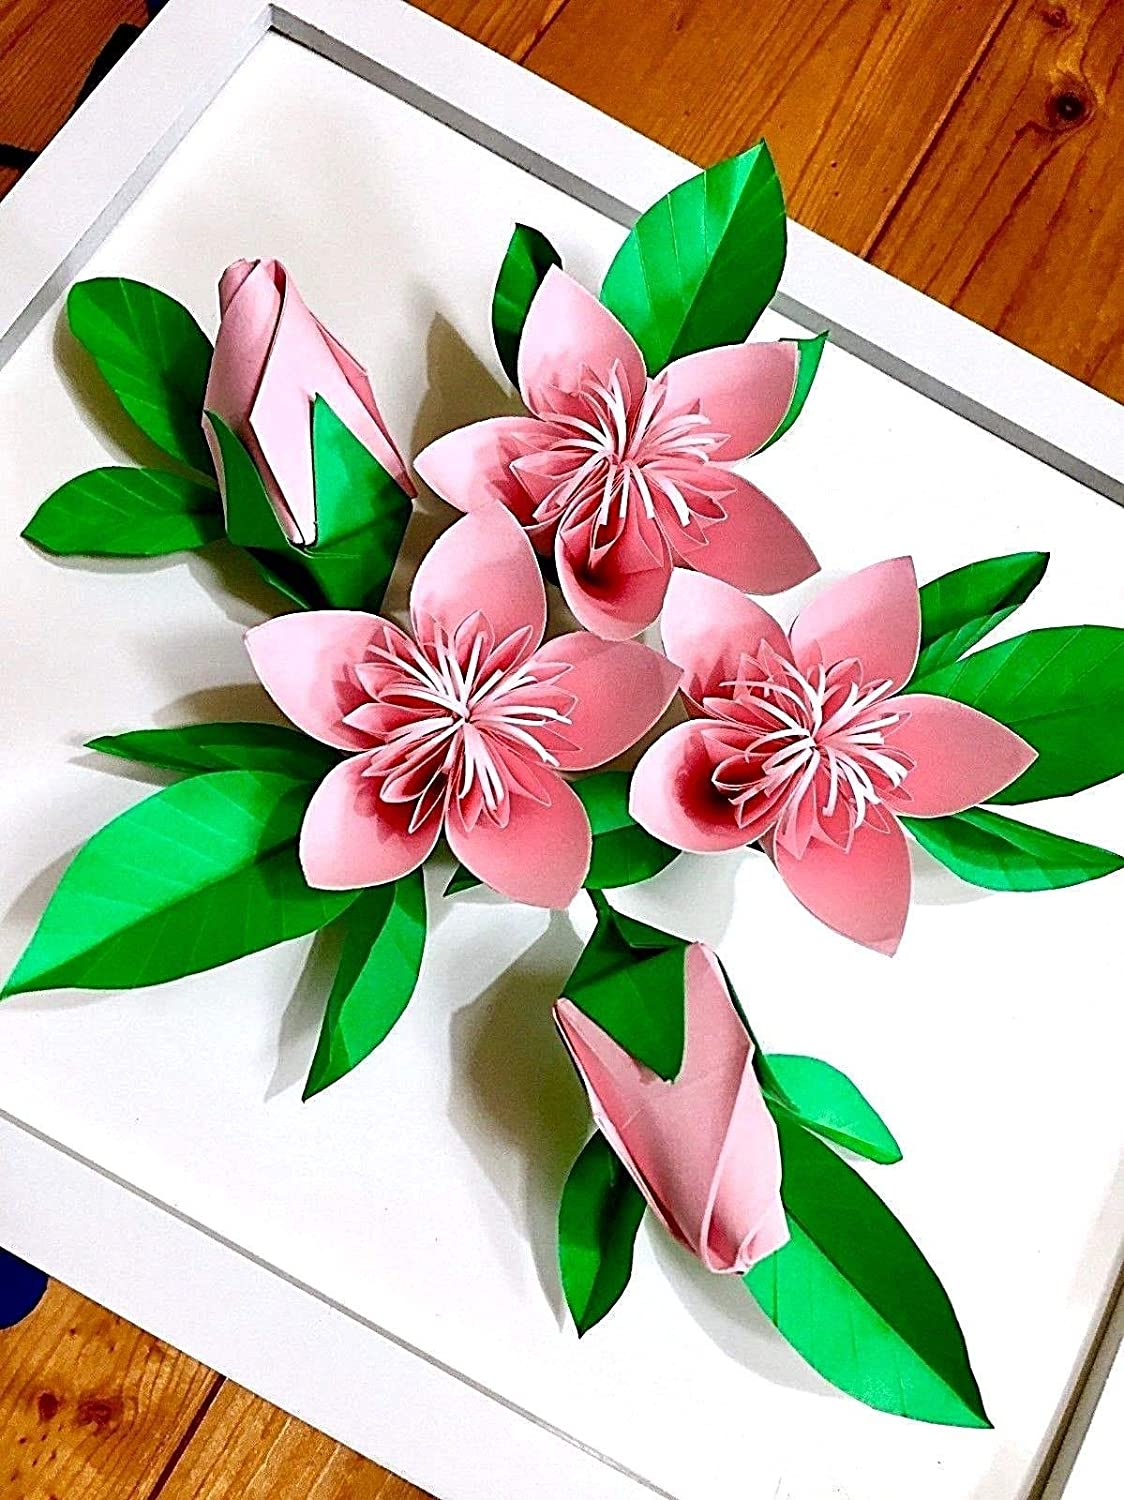 How To Make Origami Cherry Blossom - Easy Origami - Origami ...   1500x1124